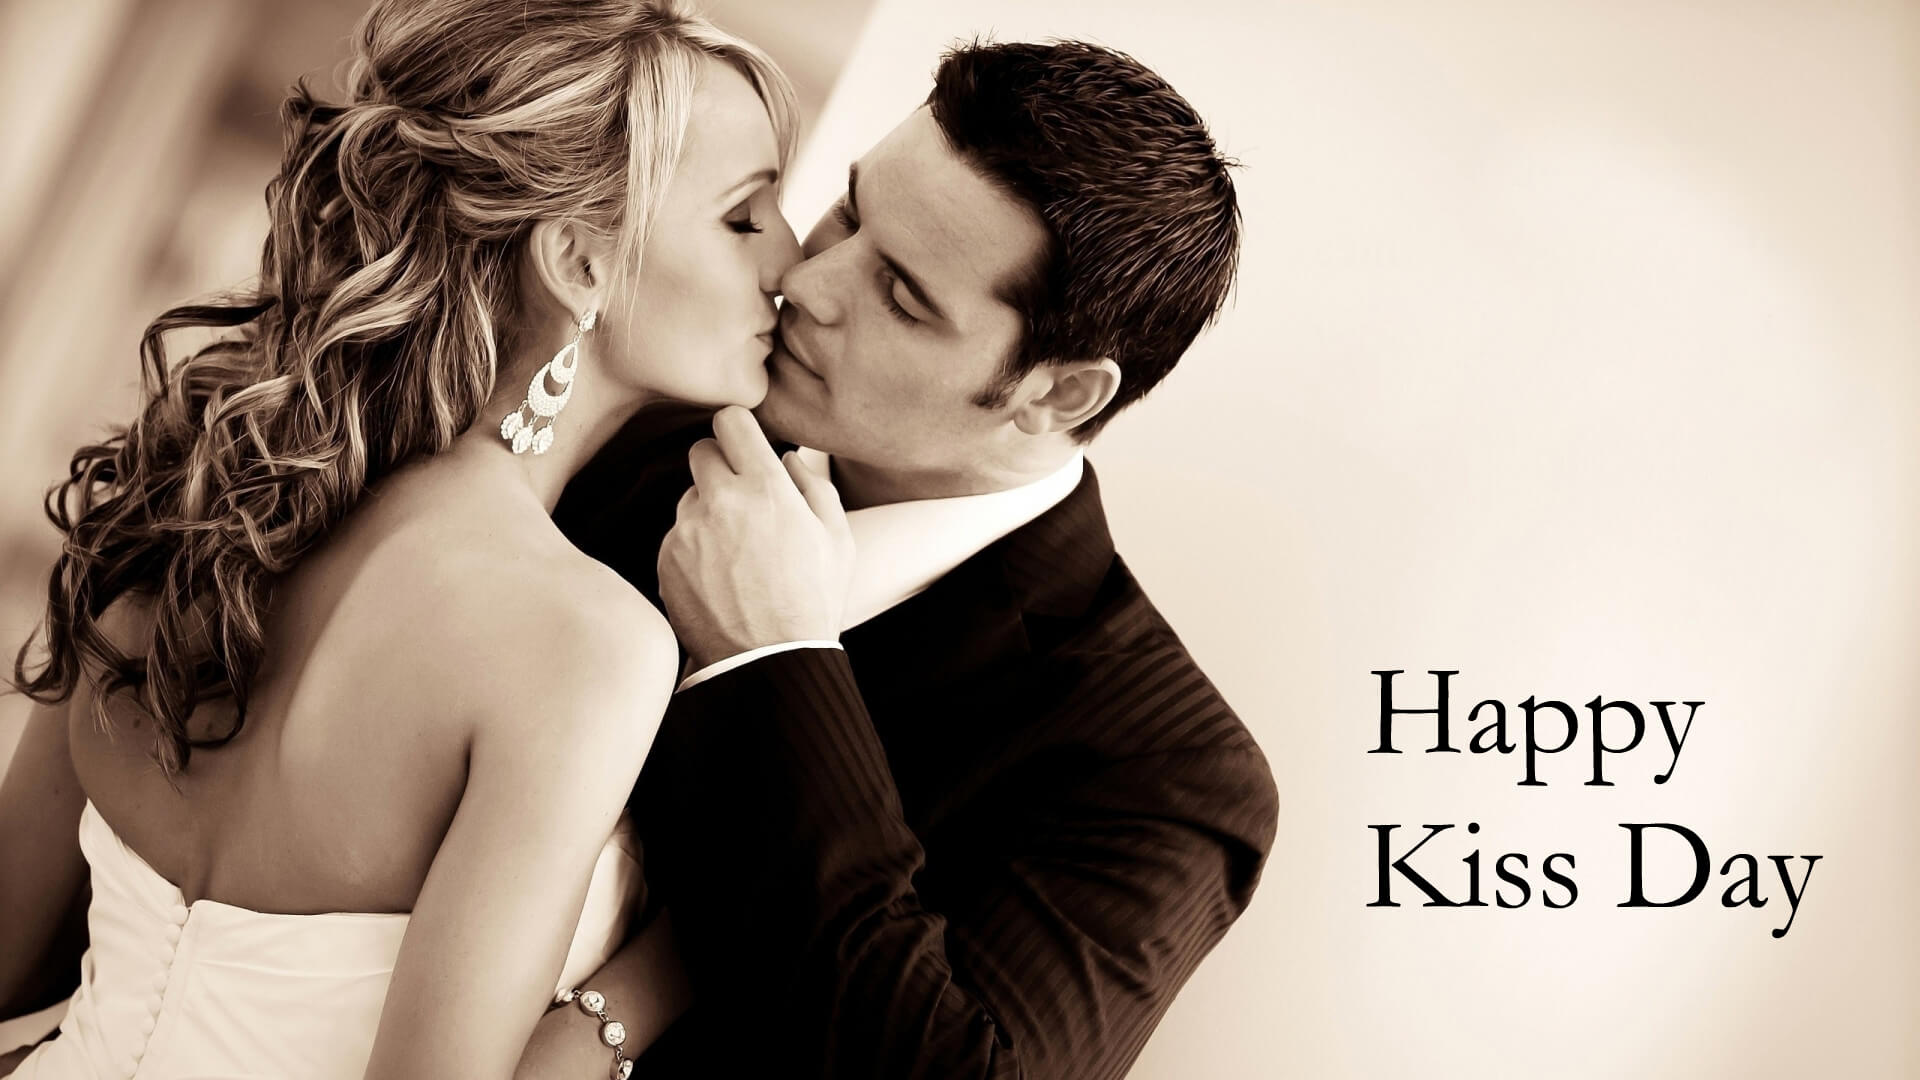 Happy Kiss Day 2018 HD Wallpaper